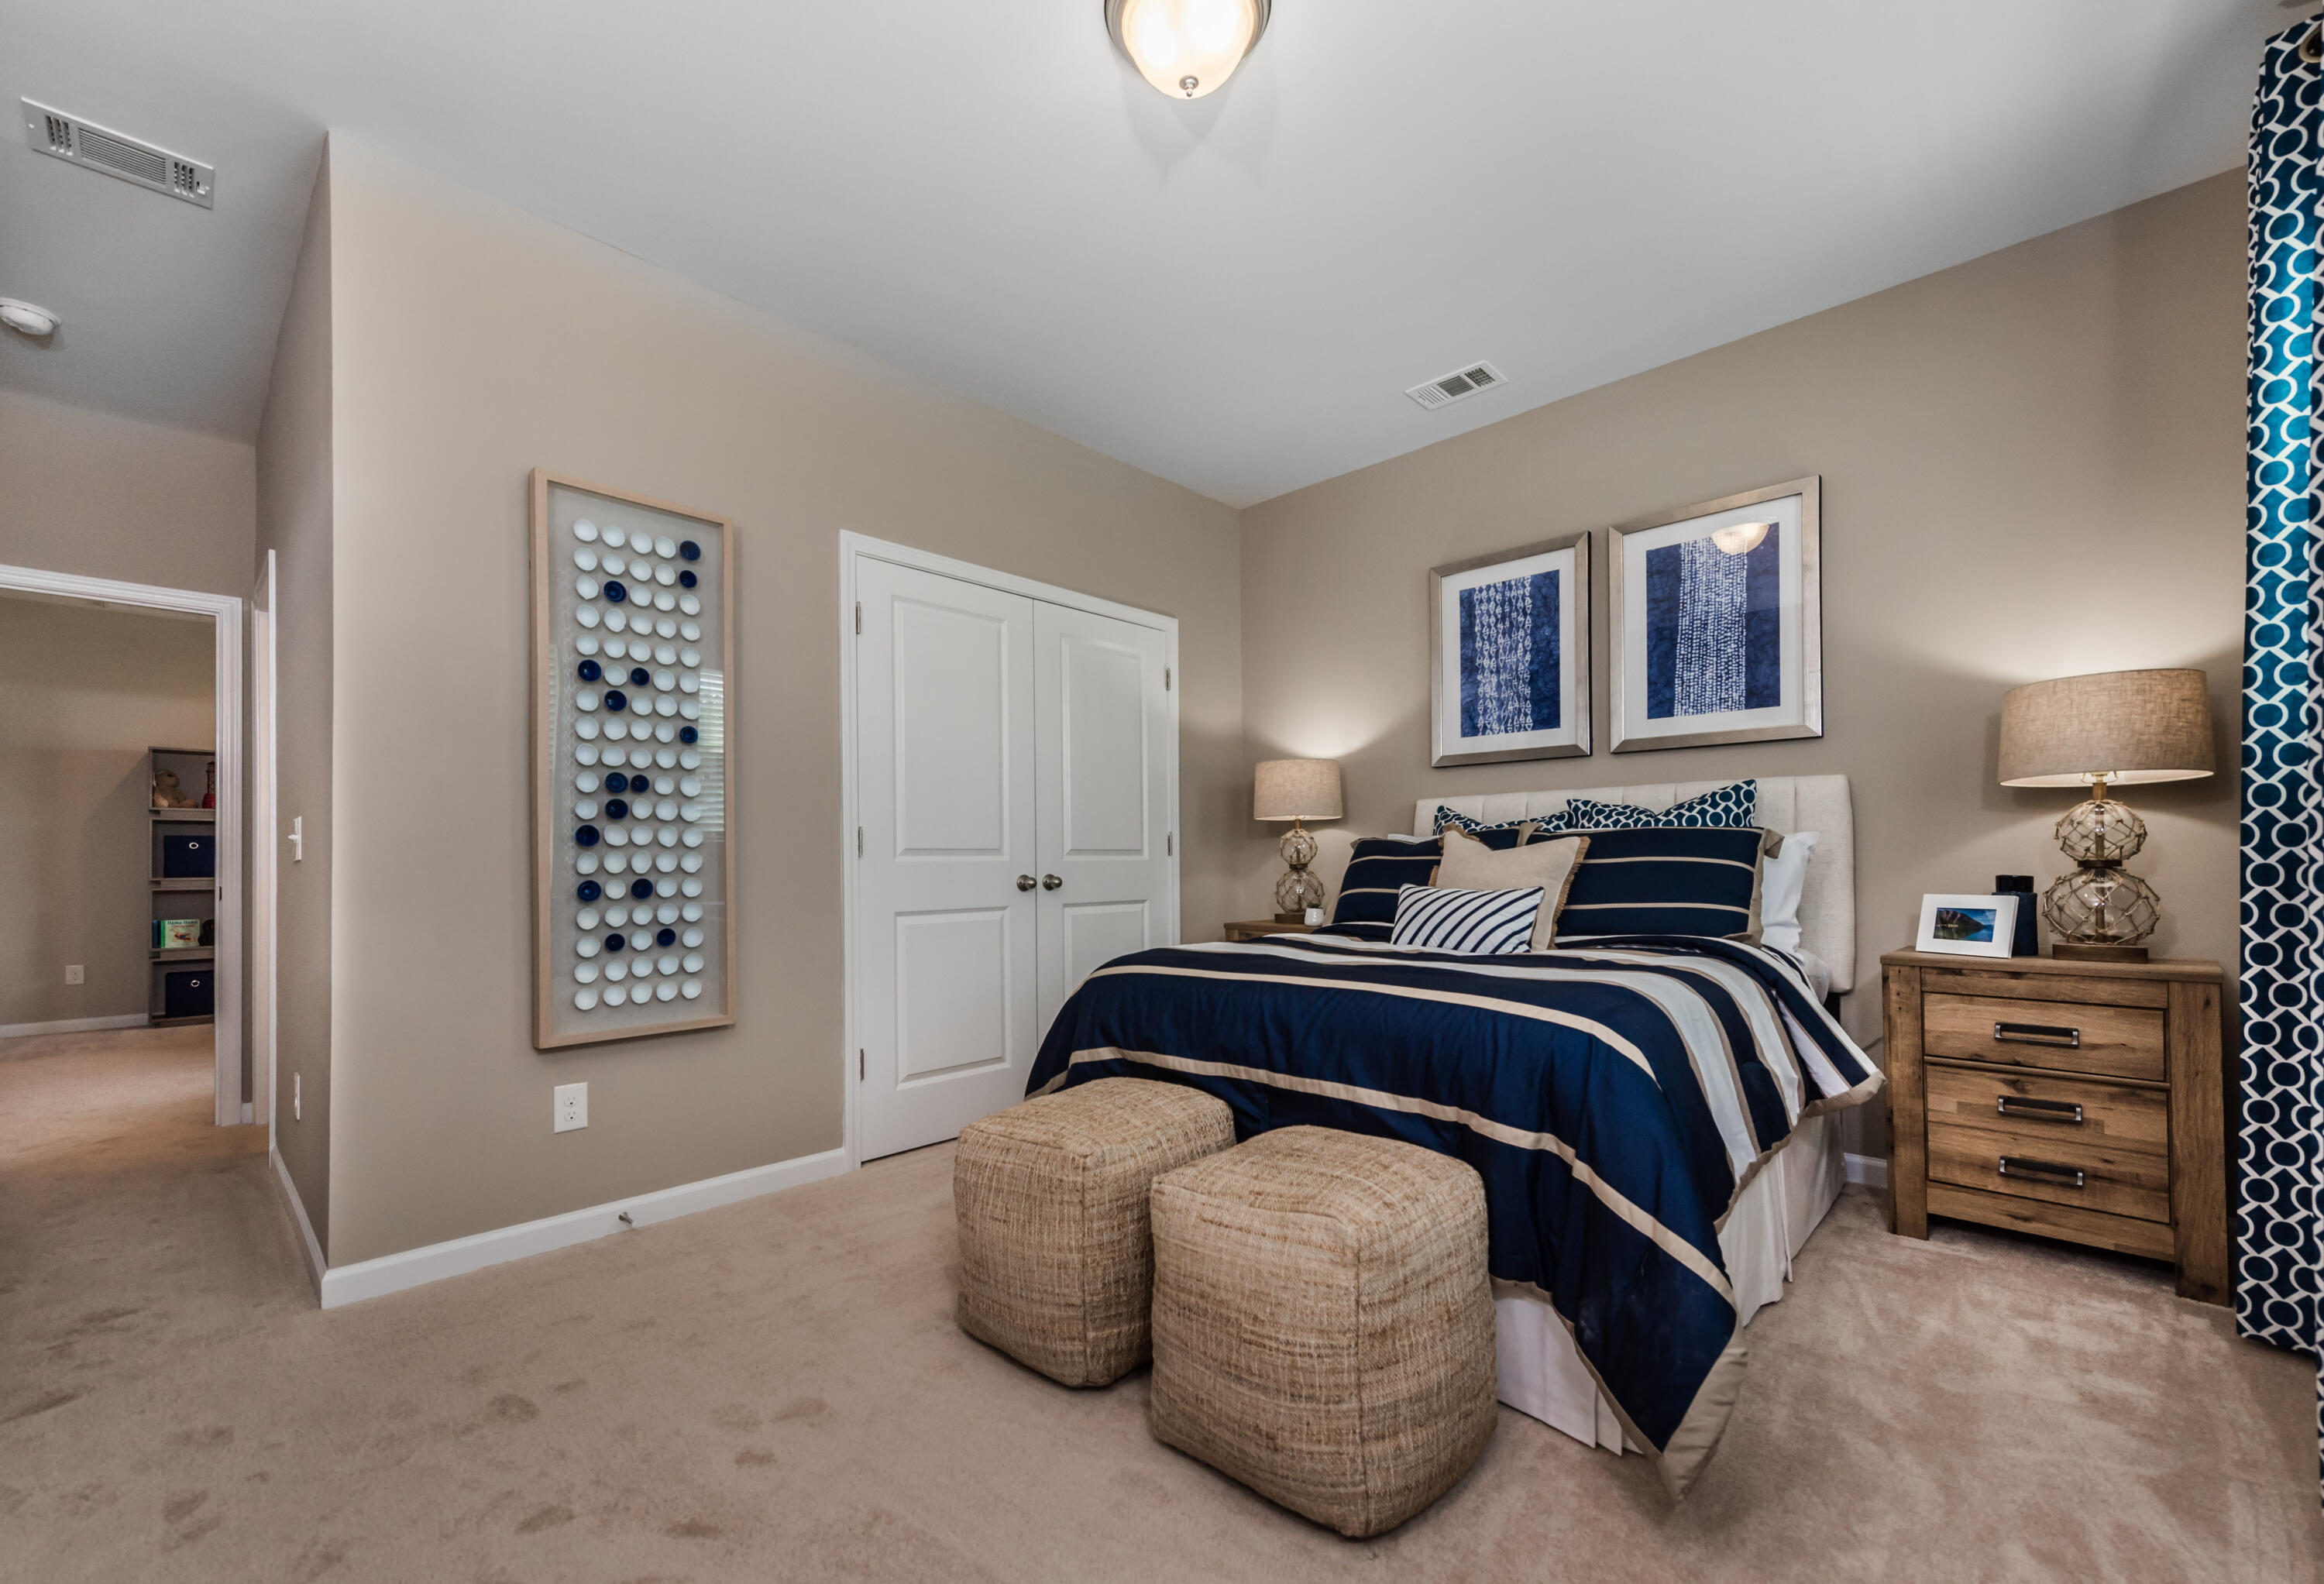 103 Wappoo Trace Lane, Summerville, 29486, 4 Bedrooms Bedrooms, ,3 BathroomsBathrooms,Residential,For Sale,Wappoo Trace,21022281